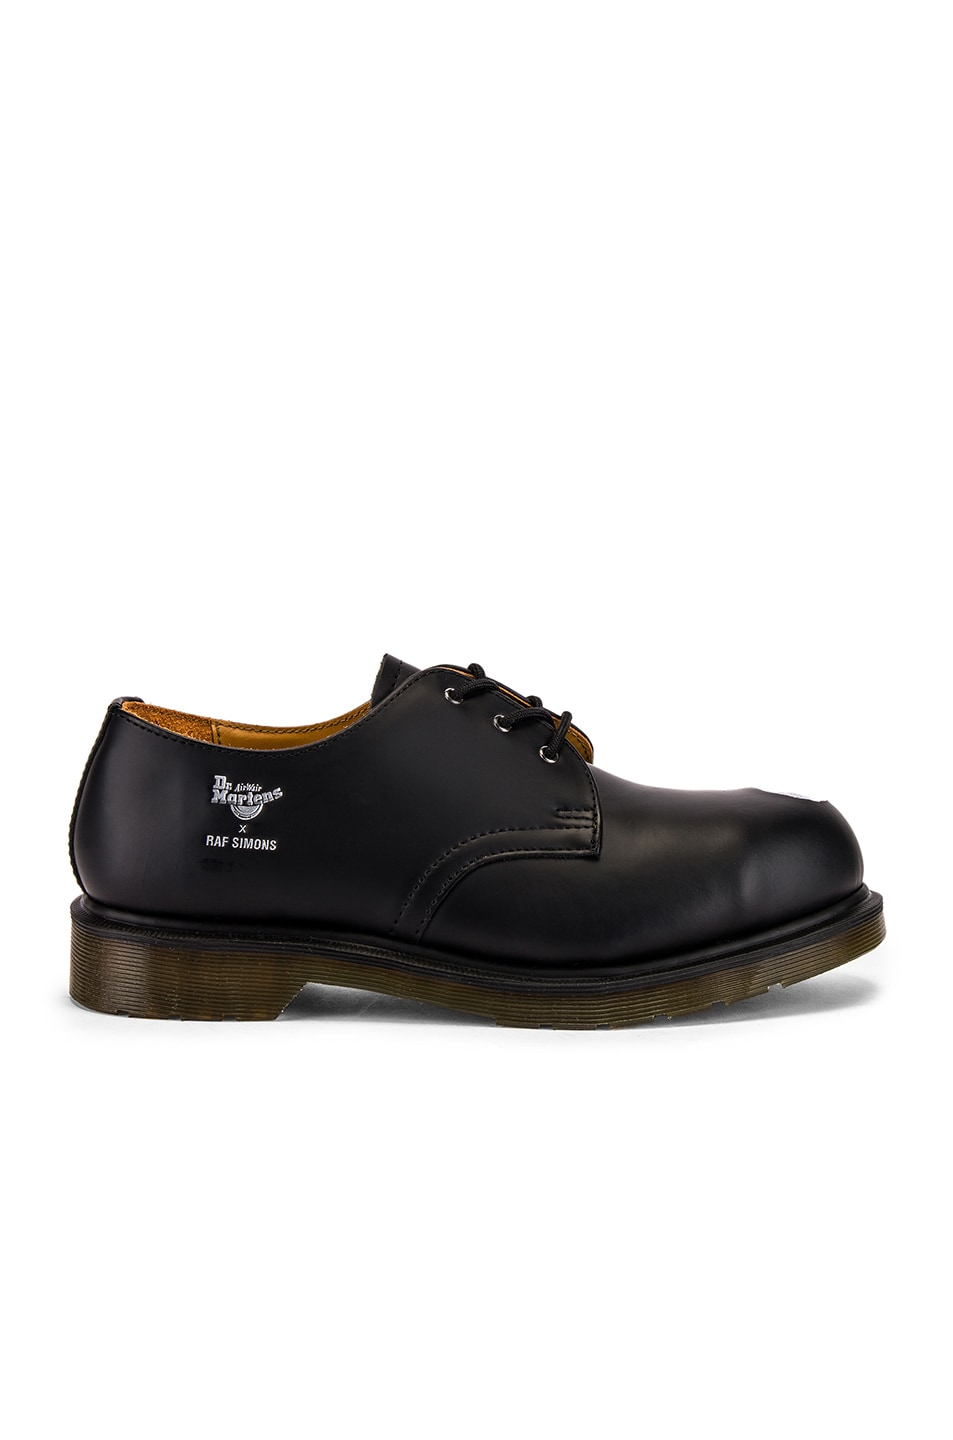 Image 2 of Raf Simons x Dr. Martens Asymmetric Cut Out Steel Shoe in Black